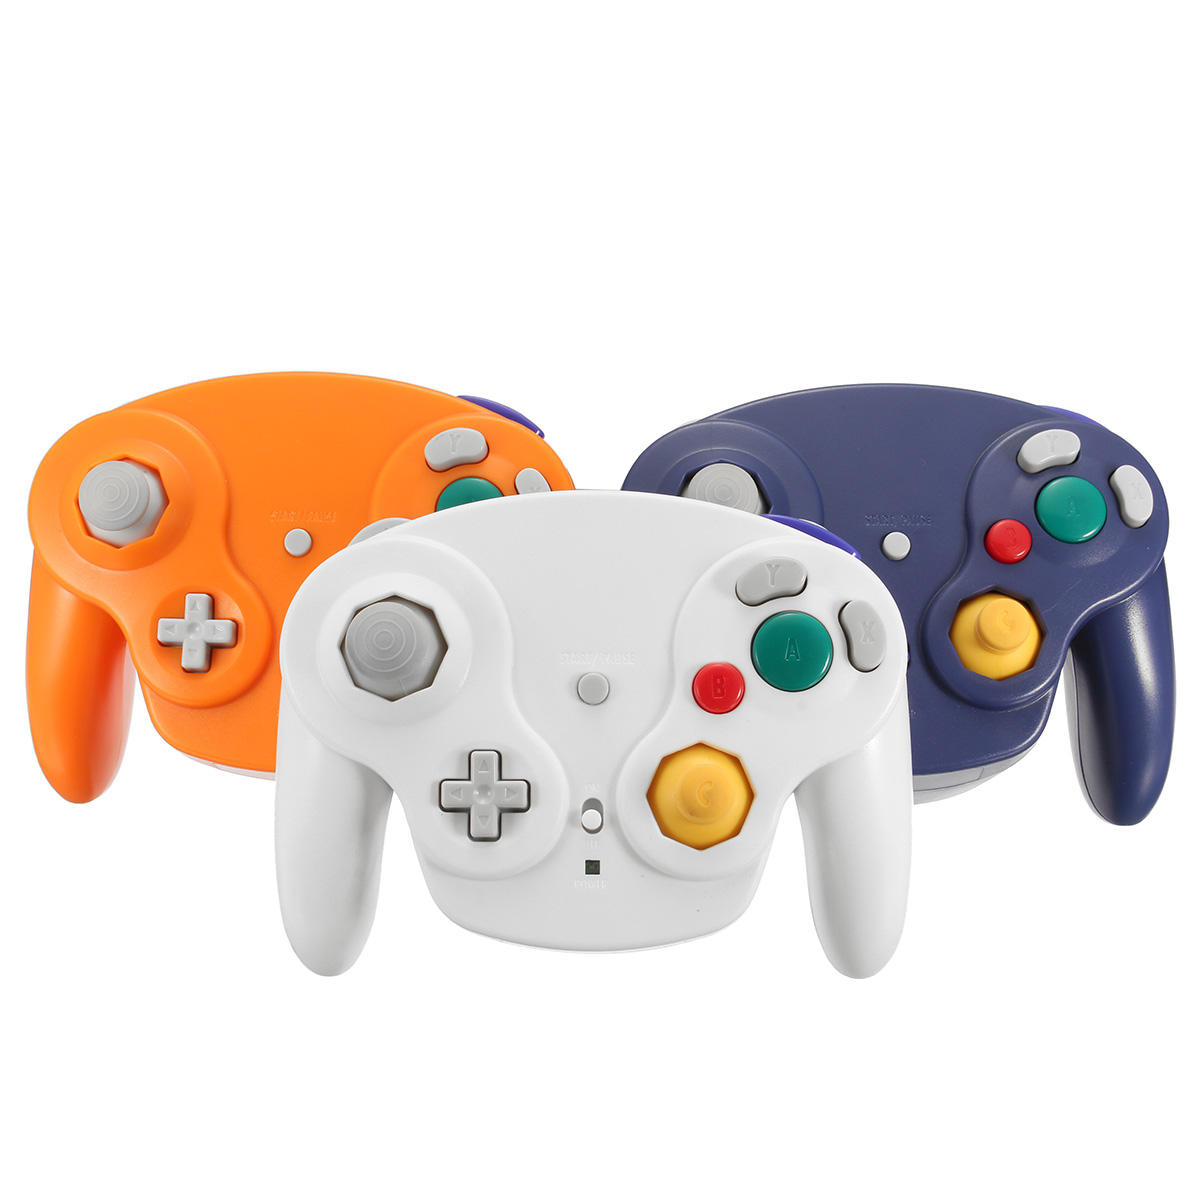 2.4Ghz Wireless Controller Game Gamepad pour Nintendo Gamecube NGC Wii